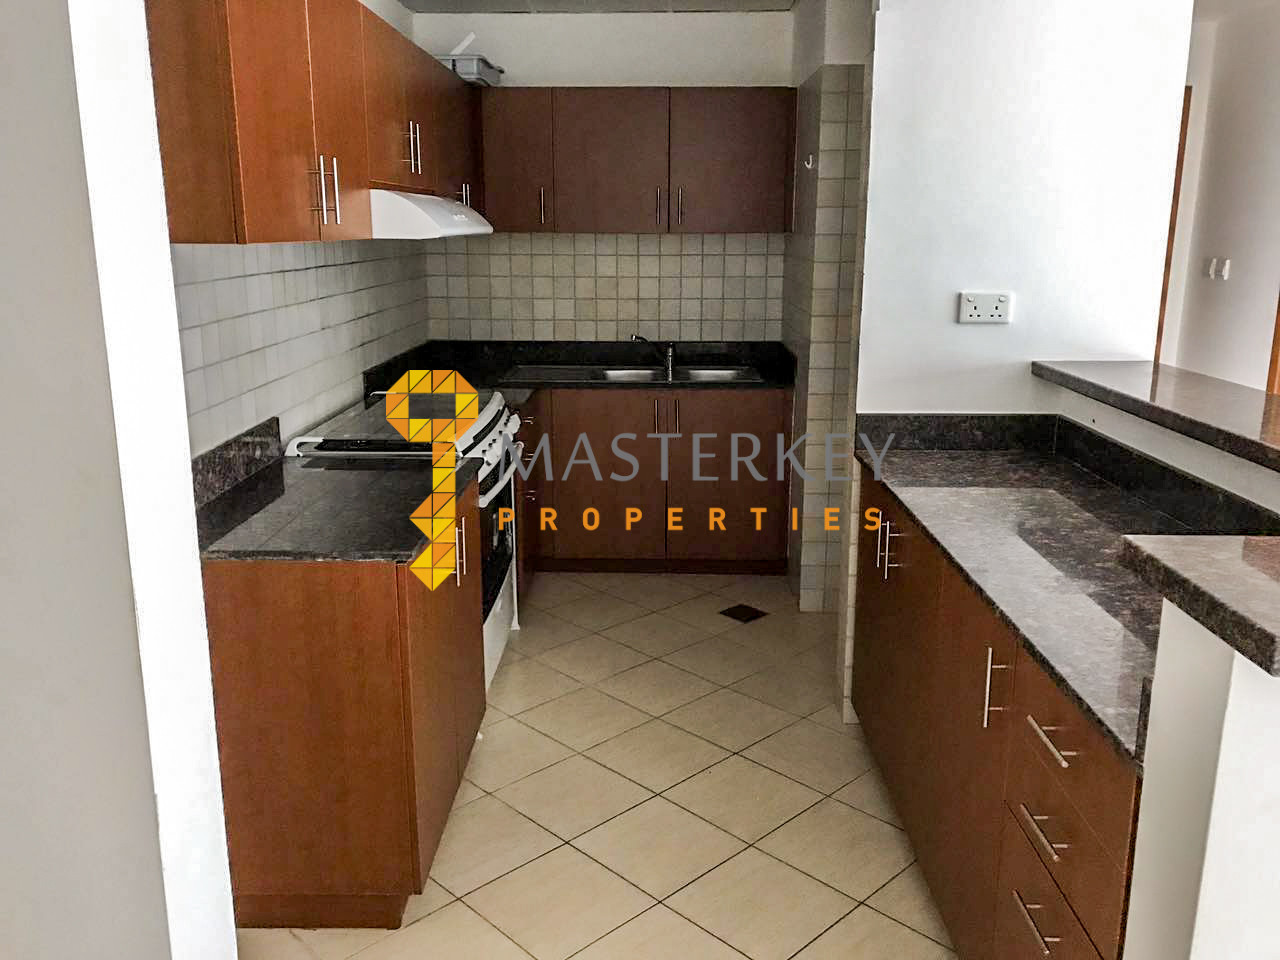 Affordable Large Apt at Low Price| Balcony